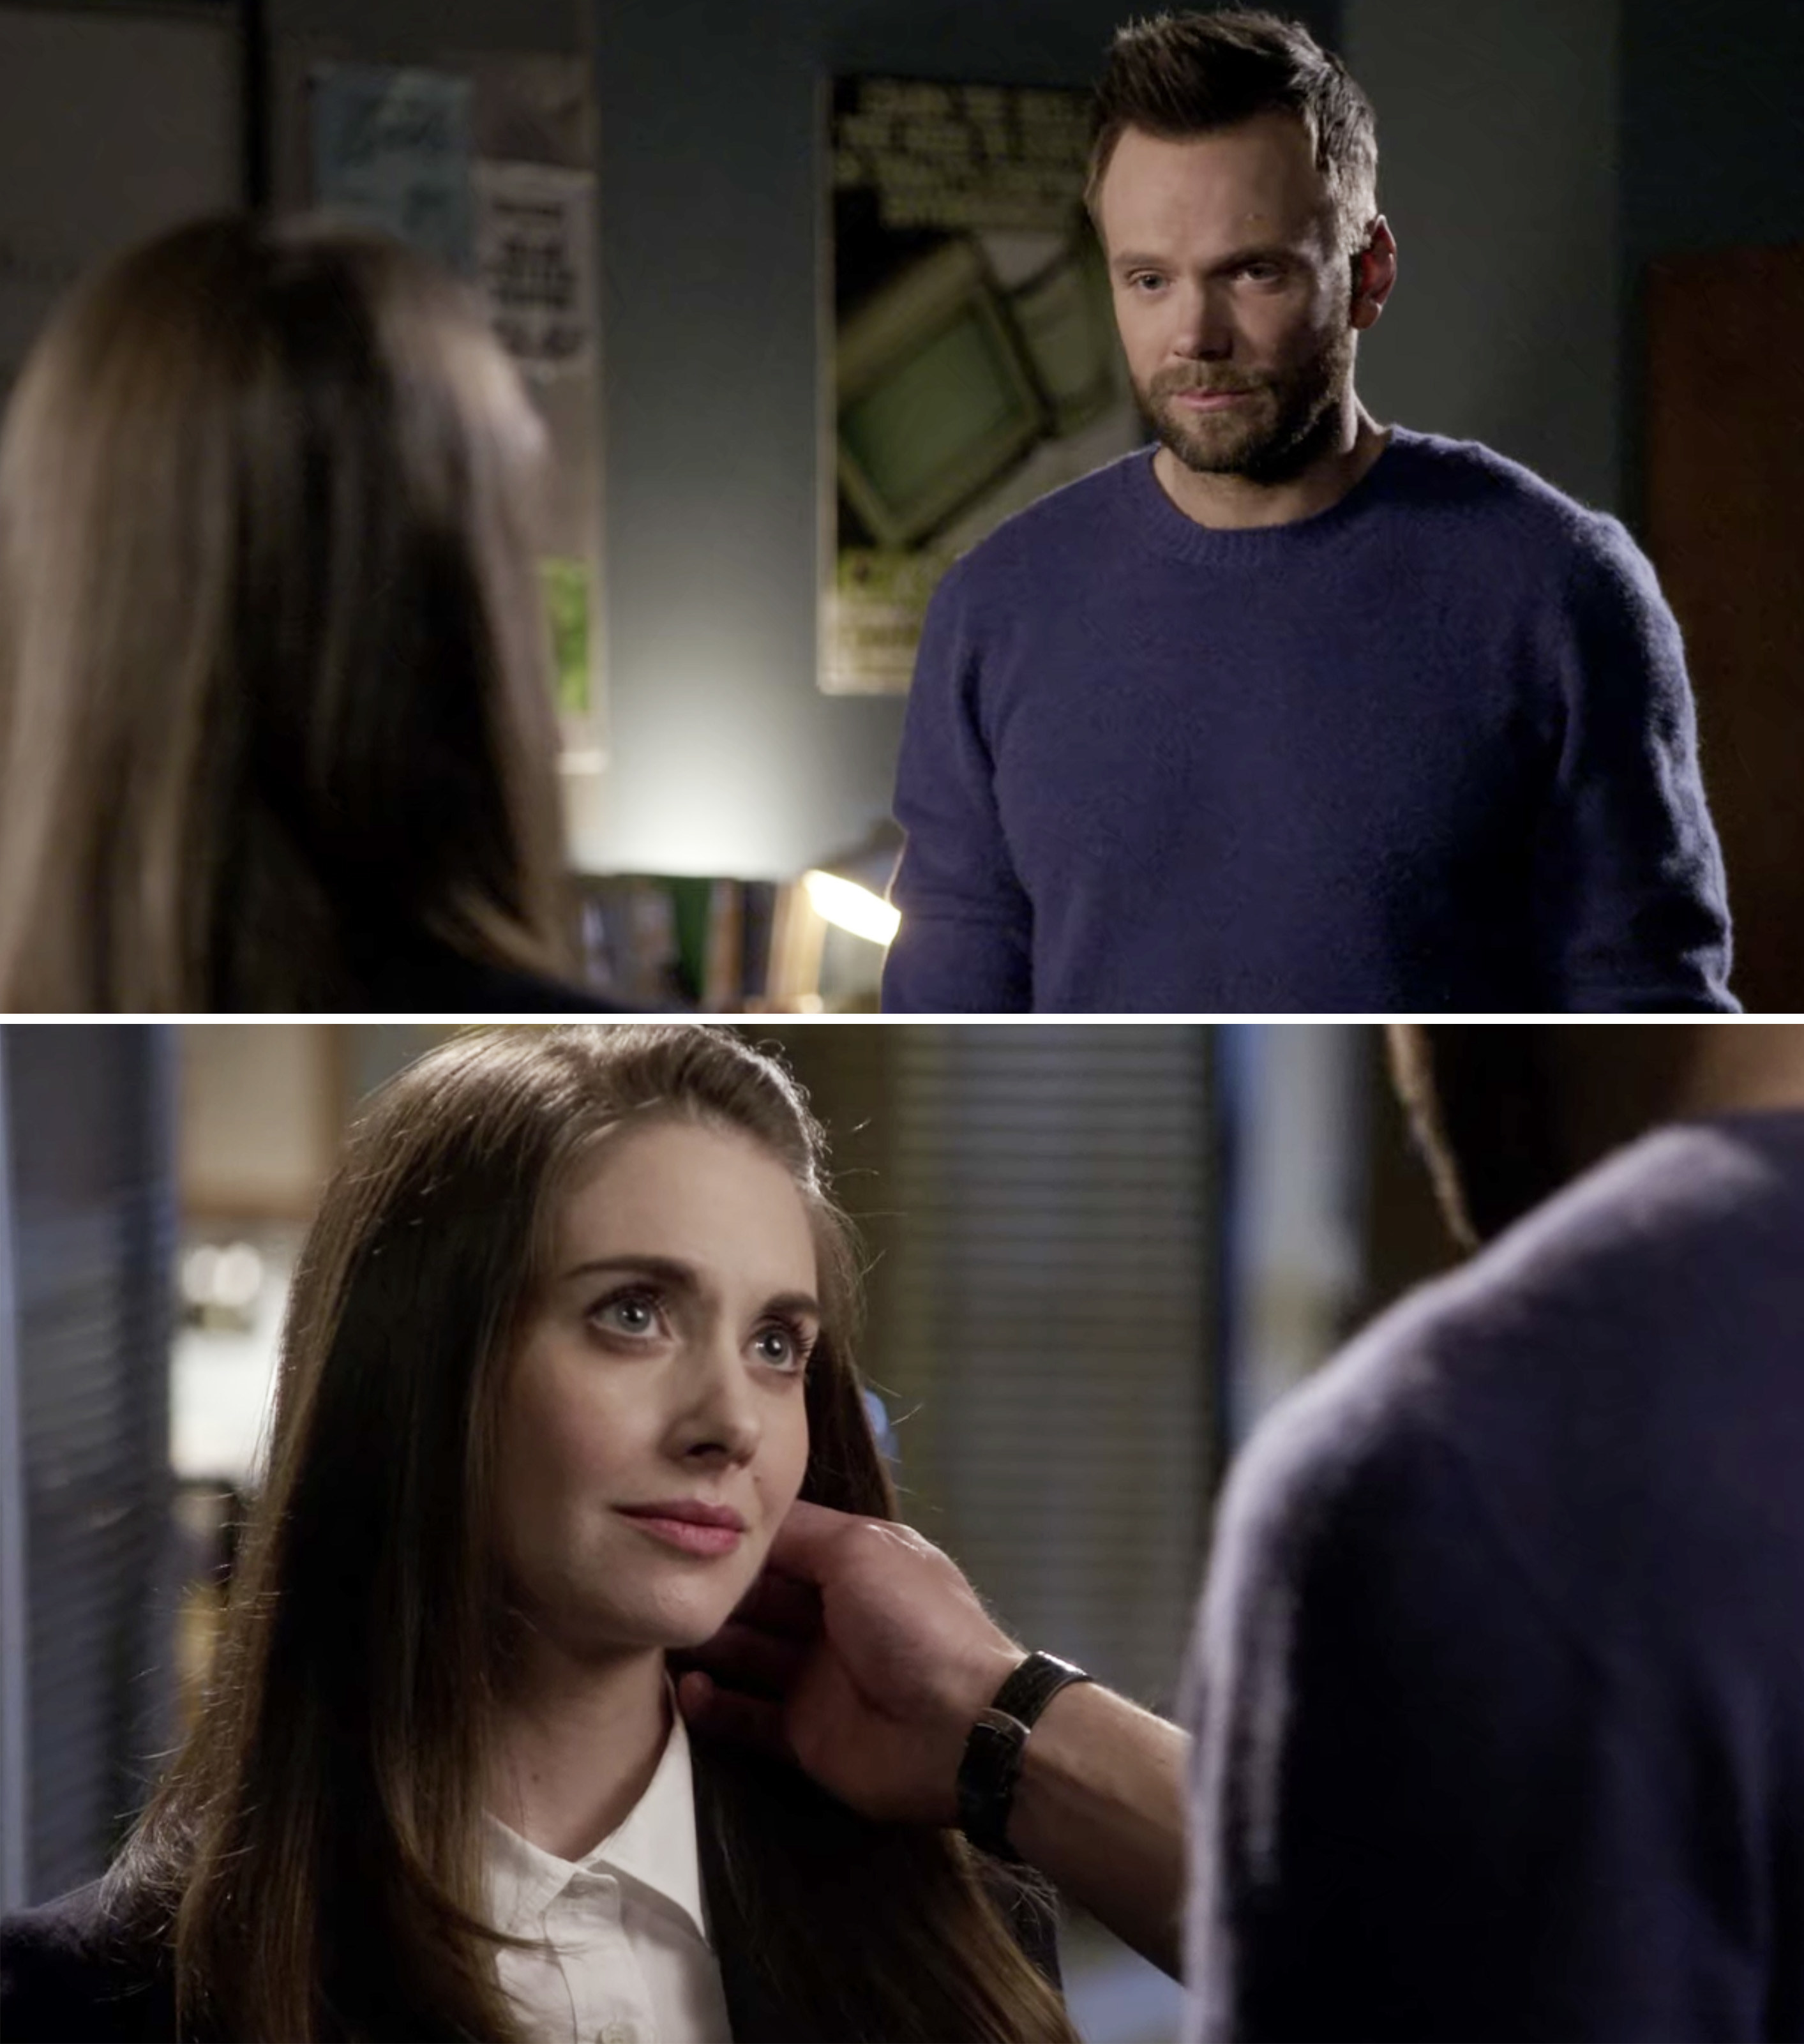 Jeff touching Annie's face and looking at her